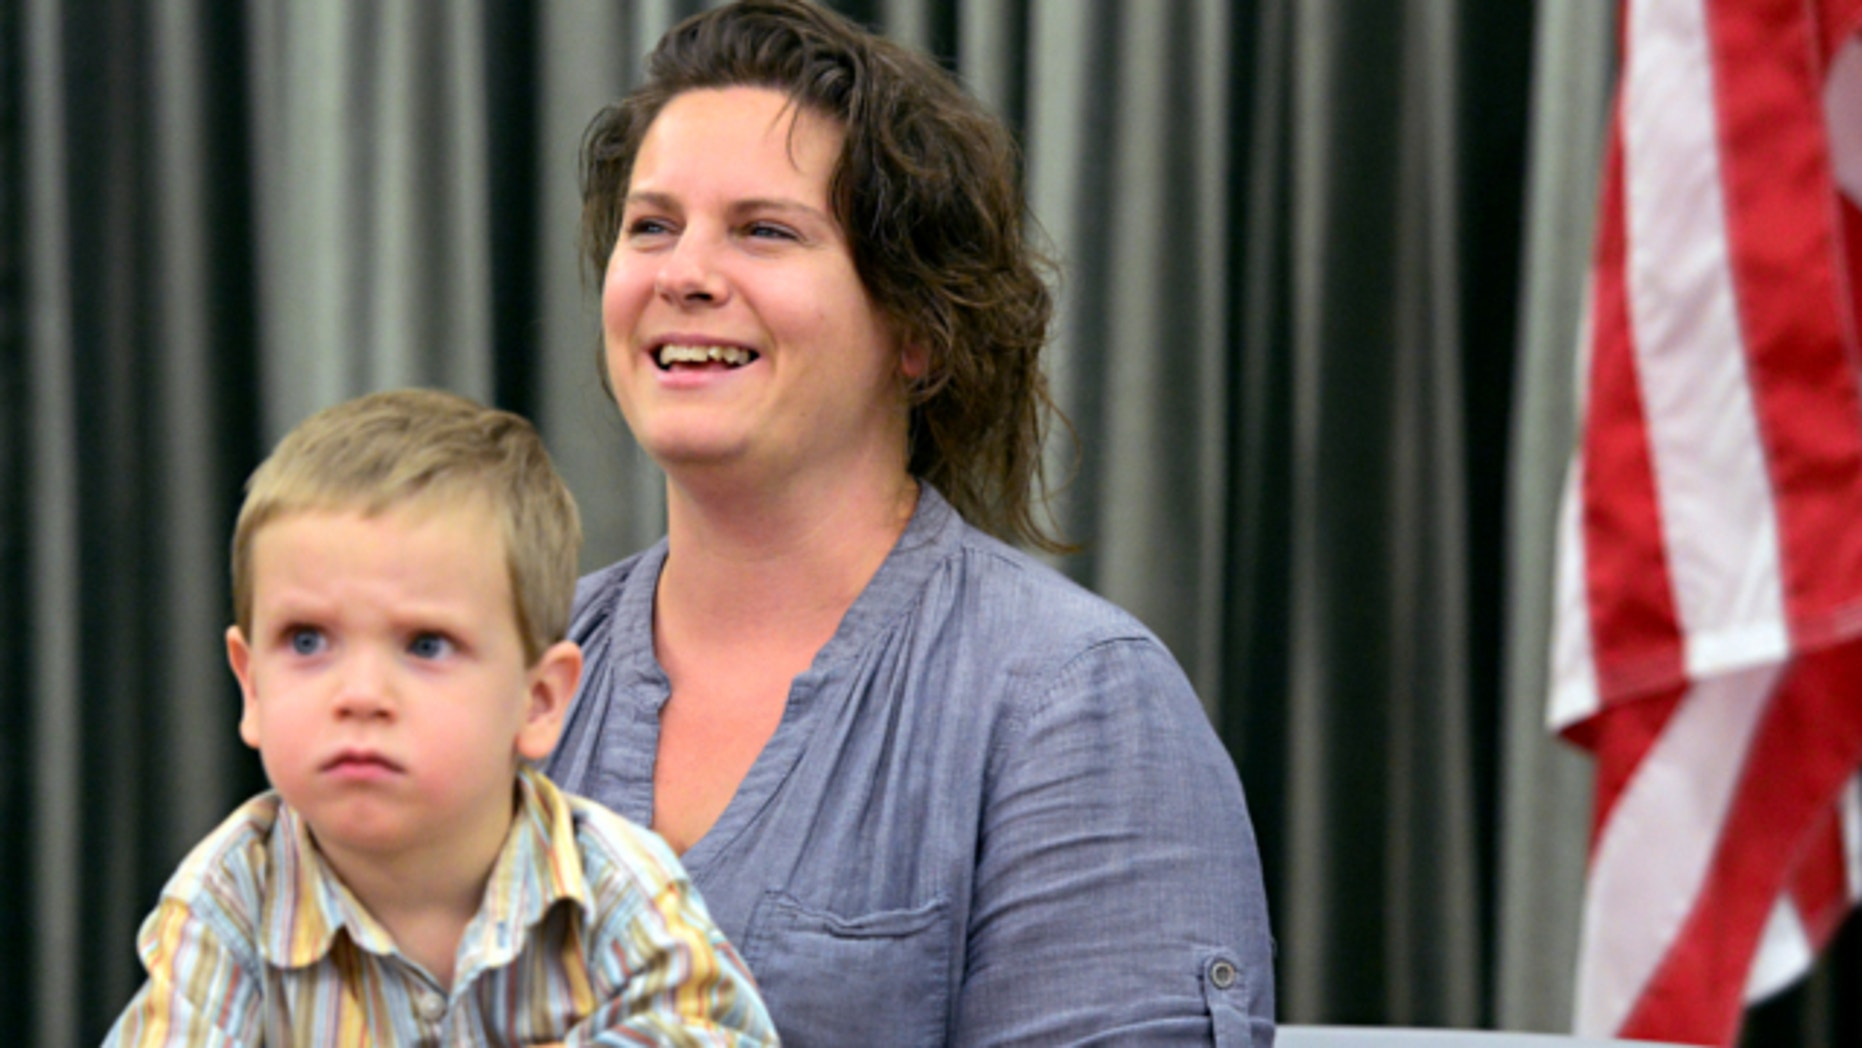 May 28, 2013: Brandy Turner, right, with her three-year-old son, Luke Turner, speaks to media during a news conference at the Denver International Airport.